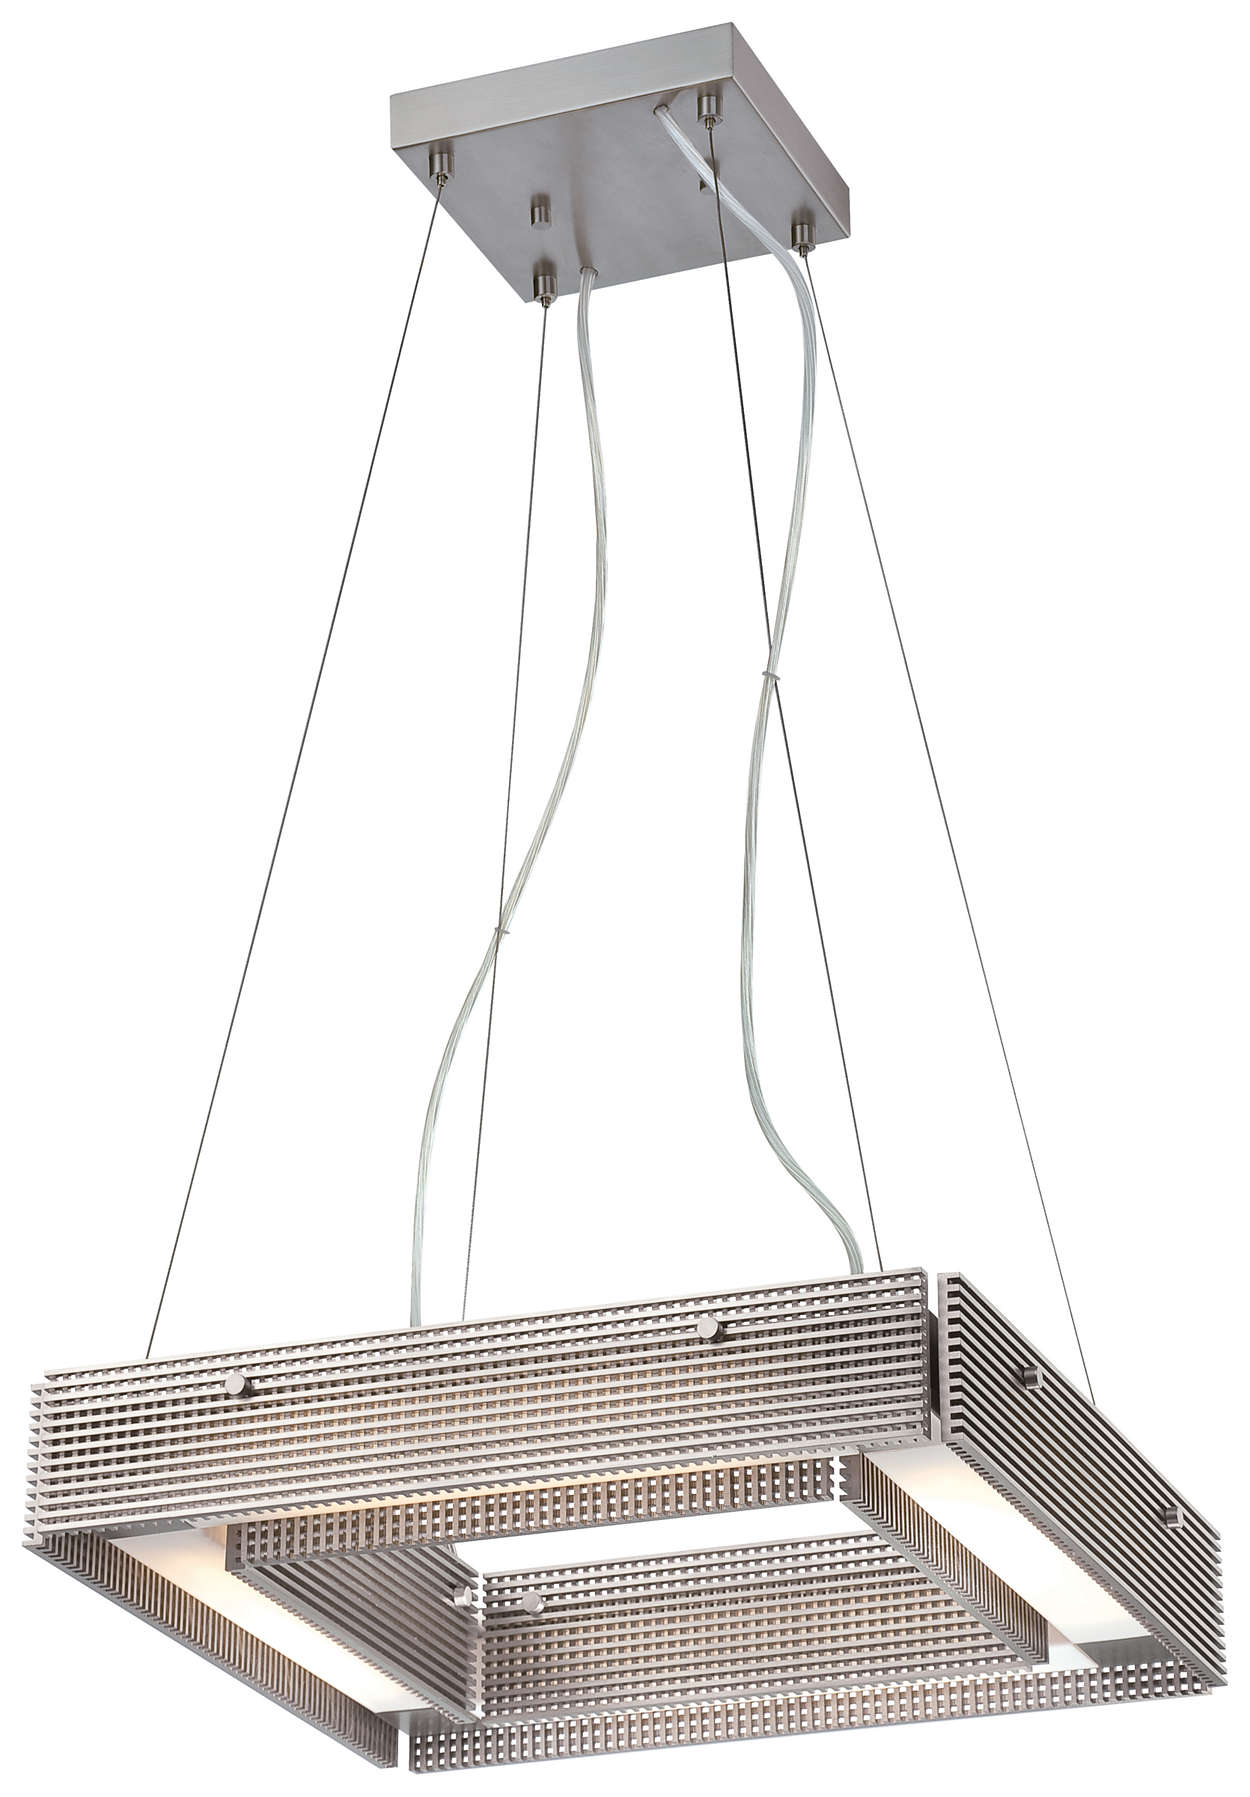 Axo 4-light Pendant in Satin Nickel finish